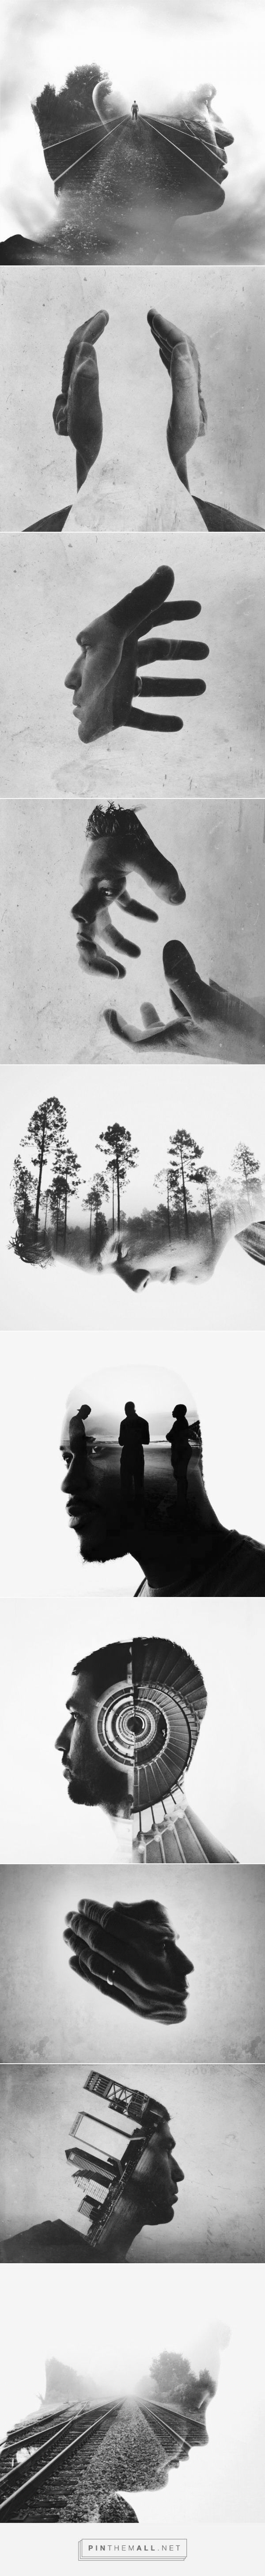 In this series, I like the use of double exposure mixed with black and white pictures. The images seem wispy and mysterious.